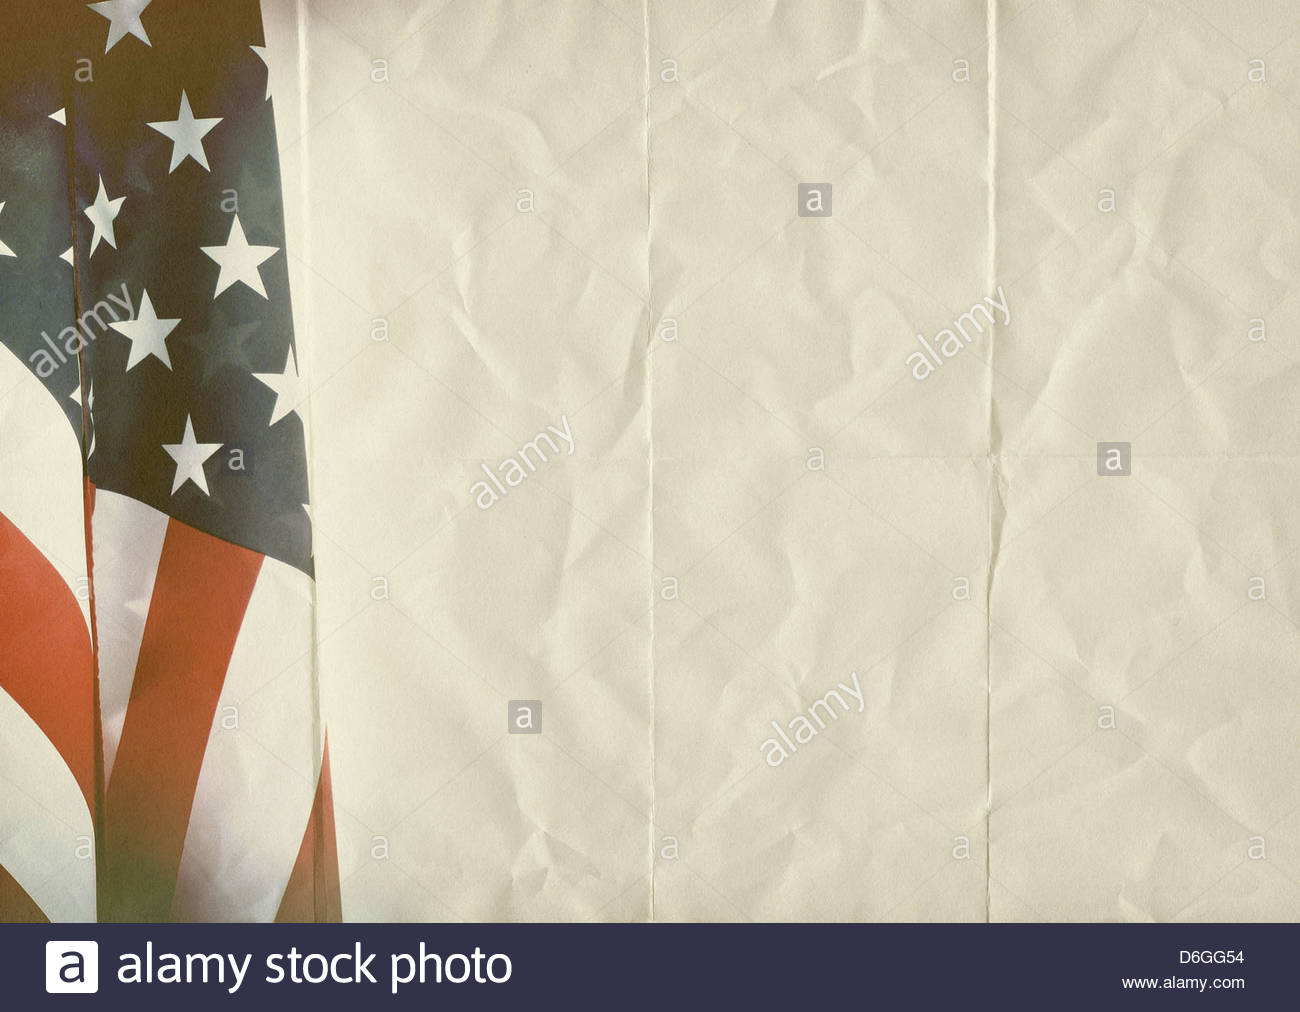 usa flag folded paper background texture - Stock Image